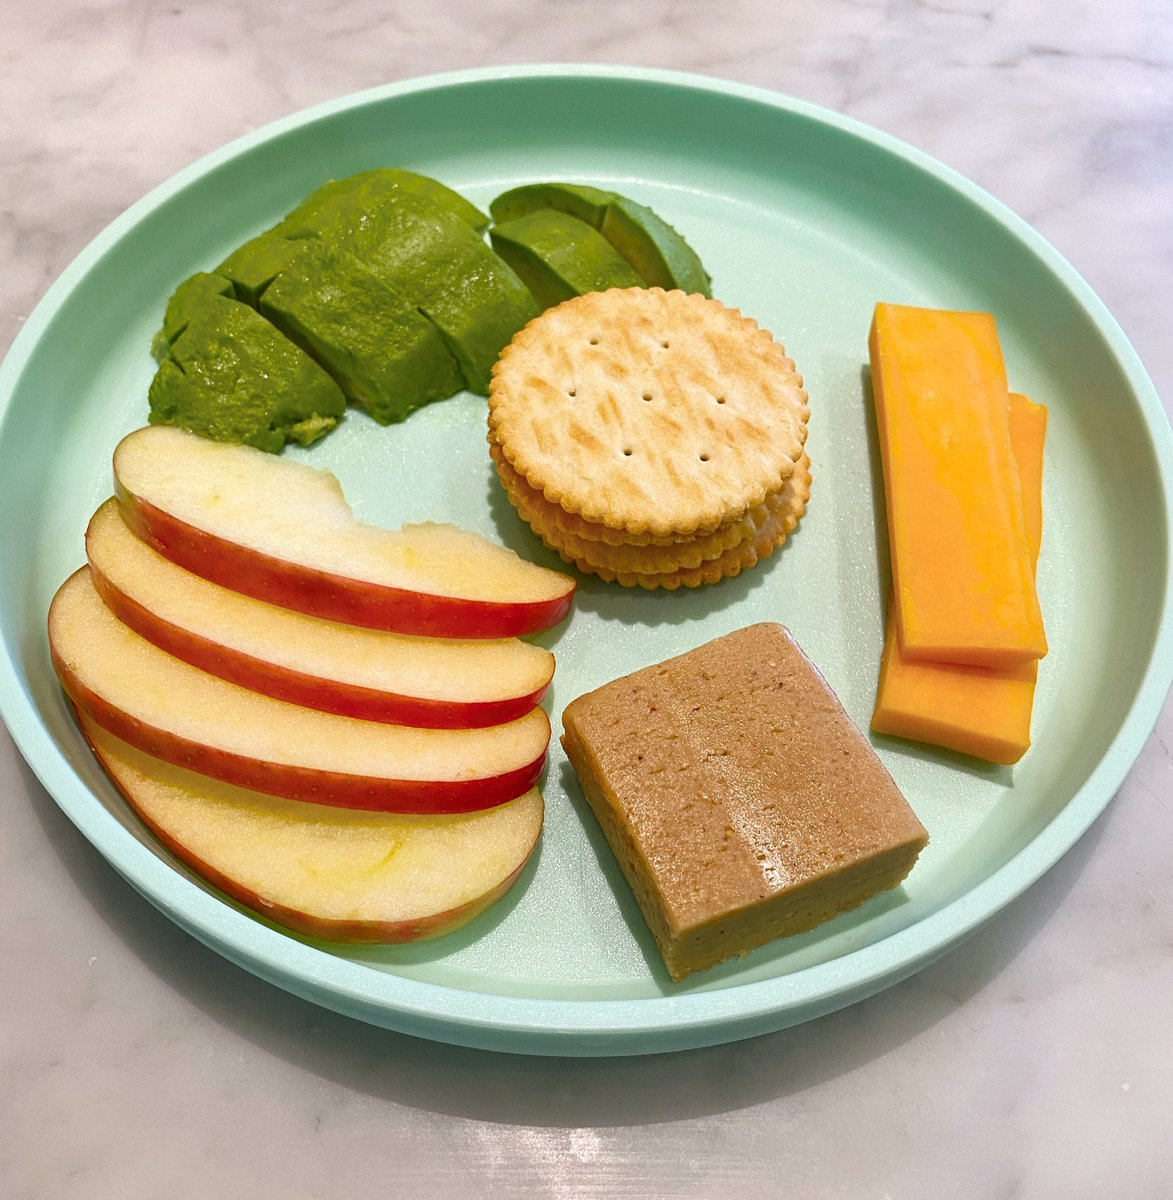 Another friggin delicious lunch for my kid that I'm jealous of